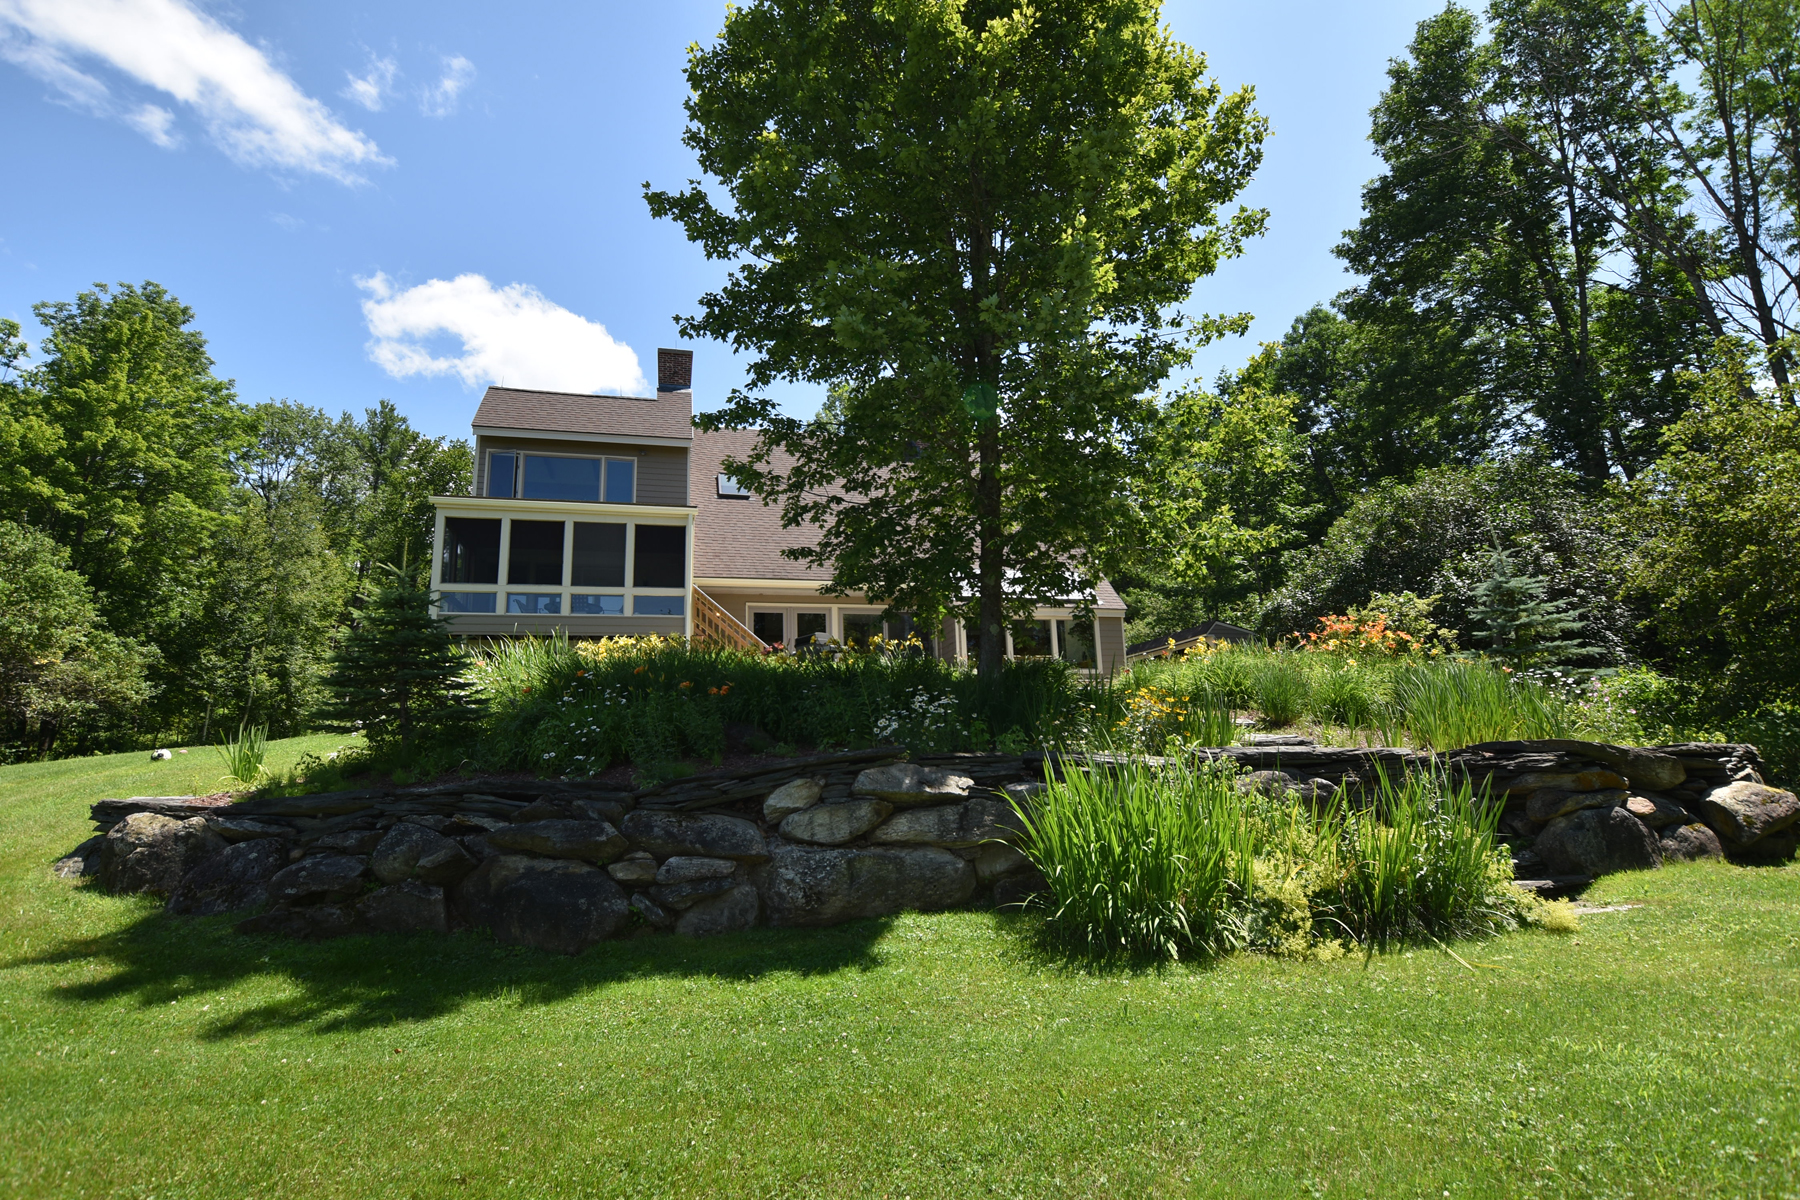 Single Family Homes for Sale at Super Cool Home with Land, Views and Pond 1049H Upper Cold River Rd Shrewsbury, Vermont 05738 United States